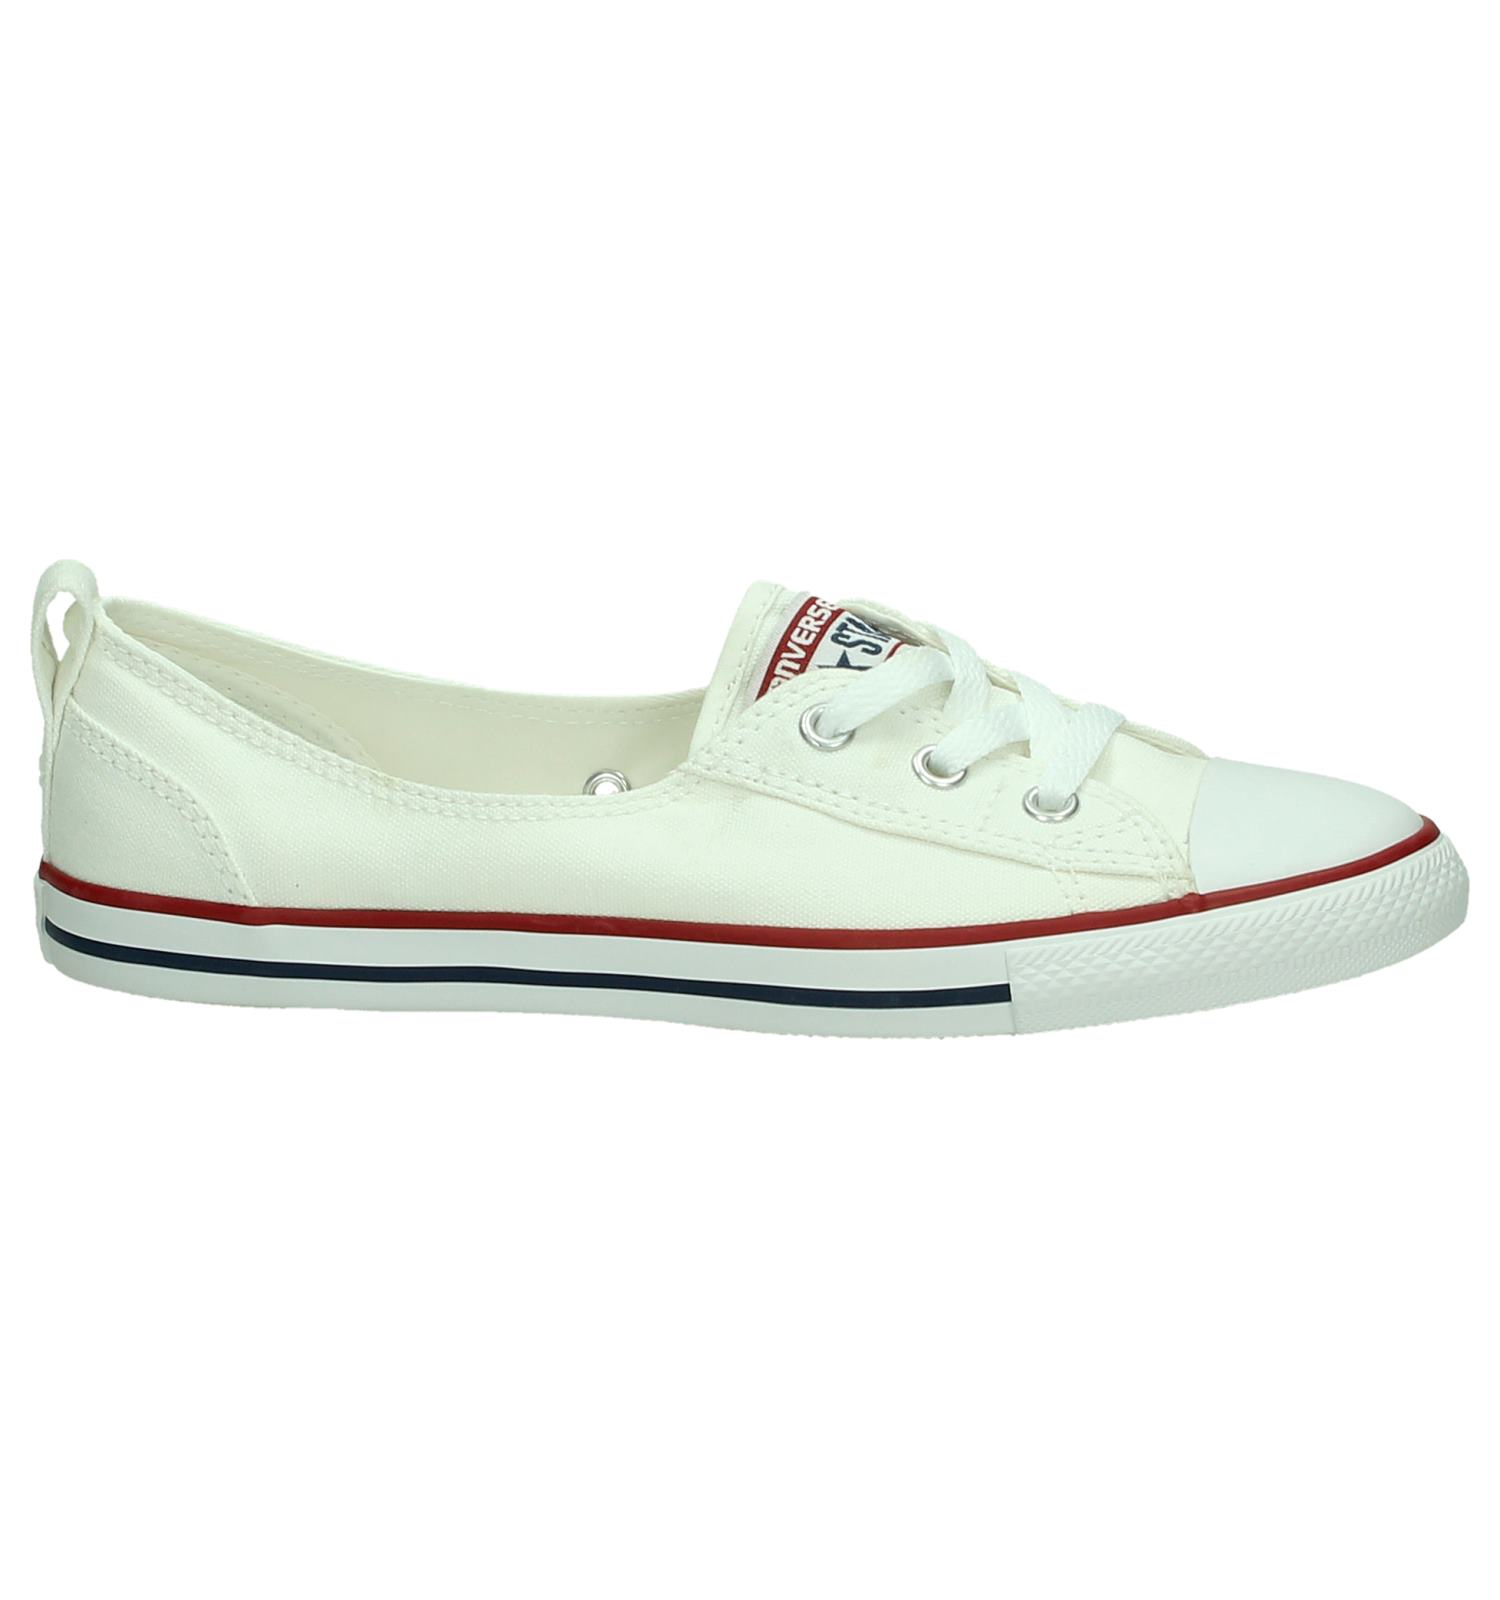 0f58cb3796e9 Converse CT All Star Ballet Witte Slip-on Sneakers